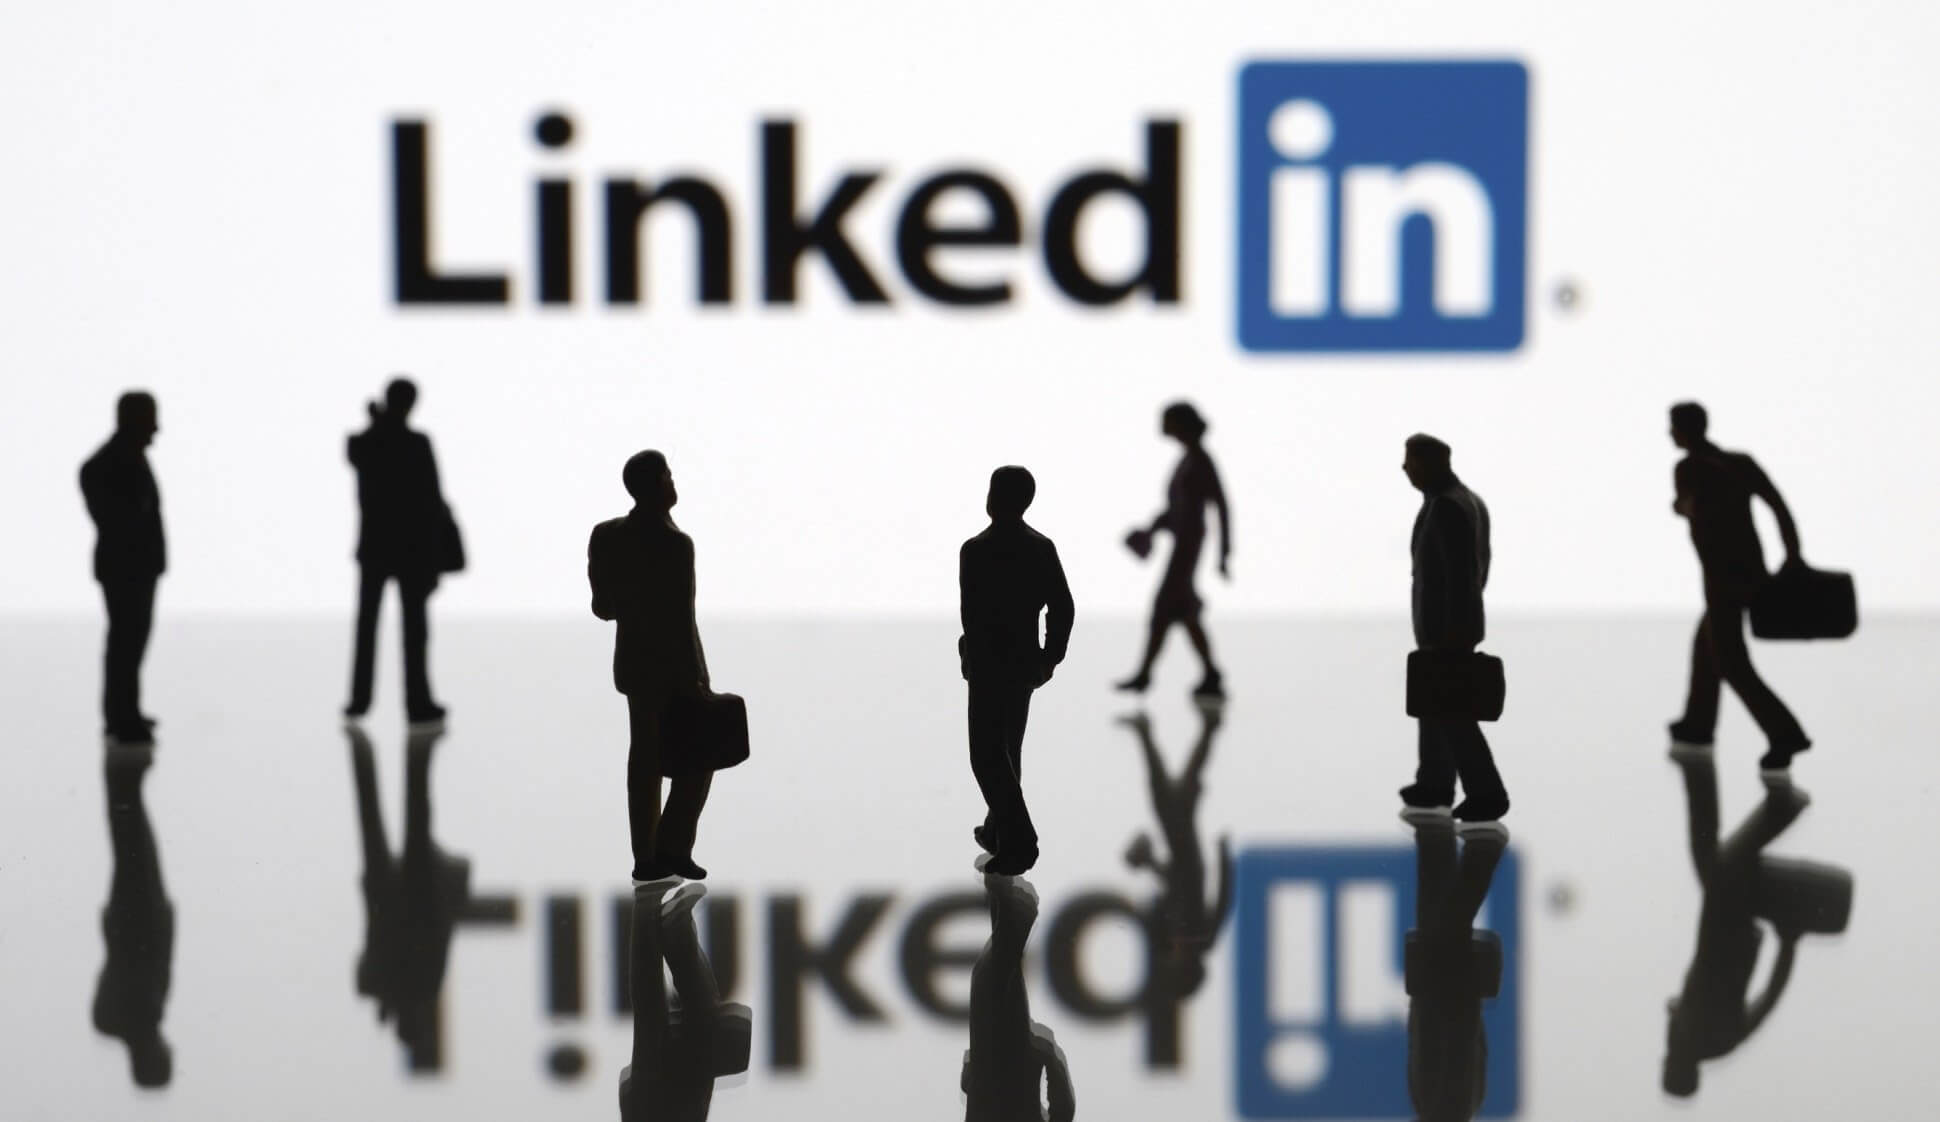 Professional LinkedIn Connection Request